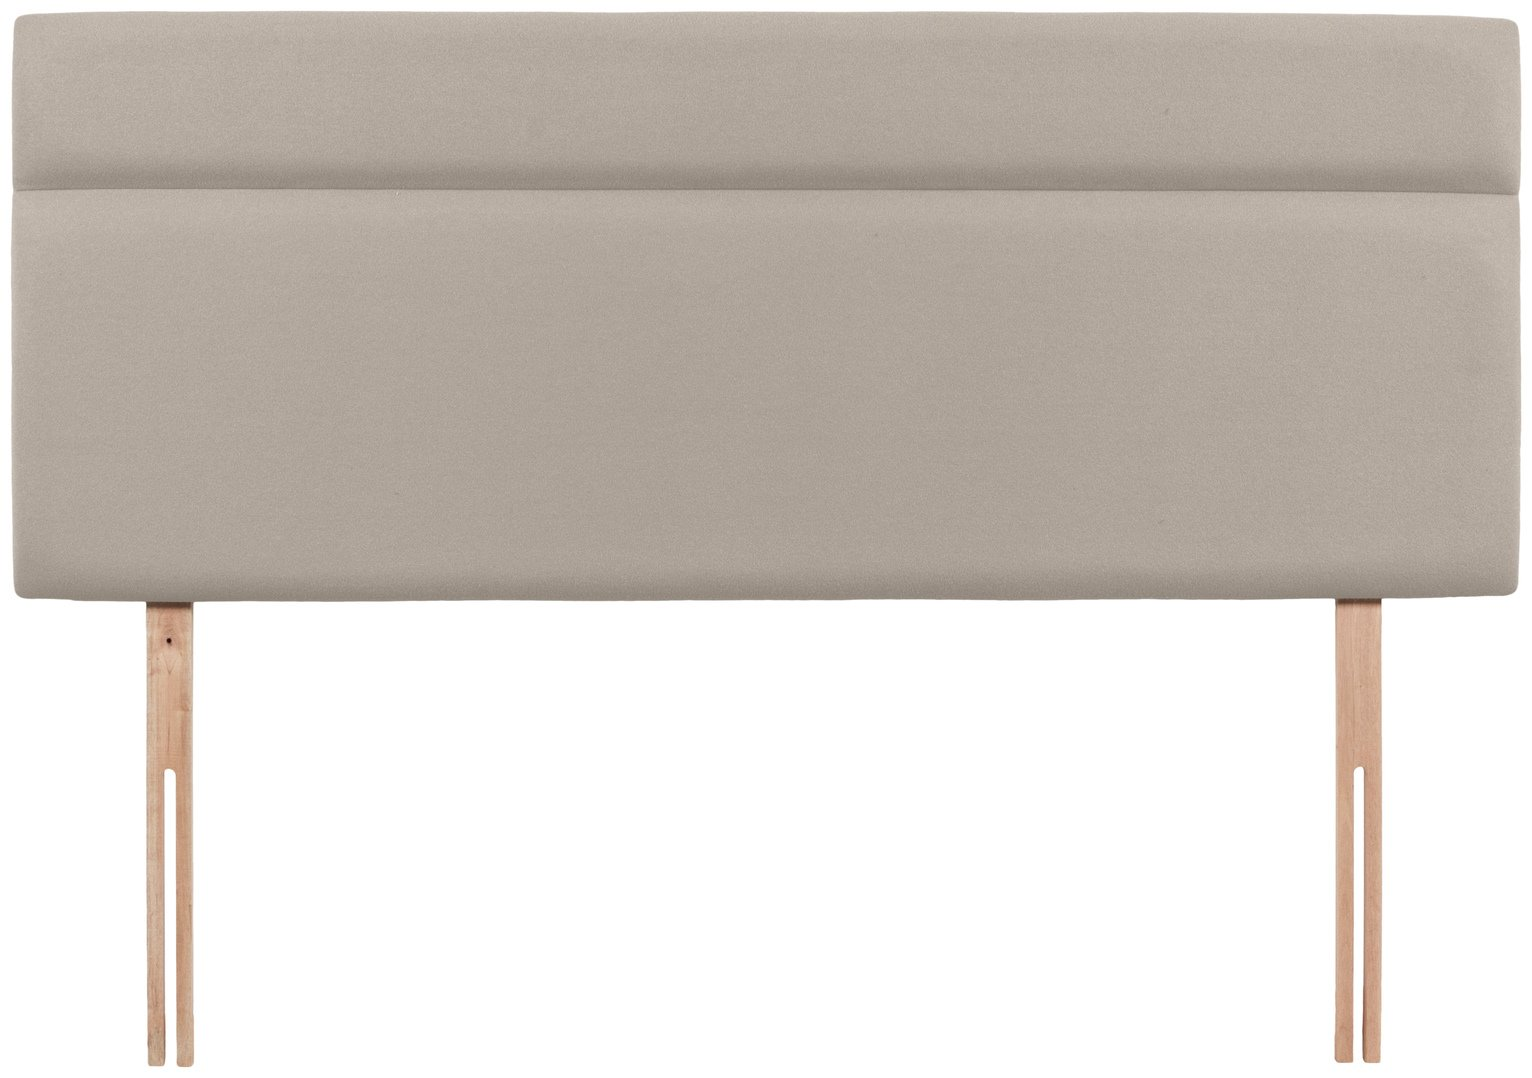 Airsprung Nile Small Double Headboard - Sandstone